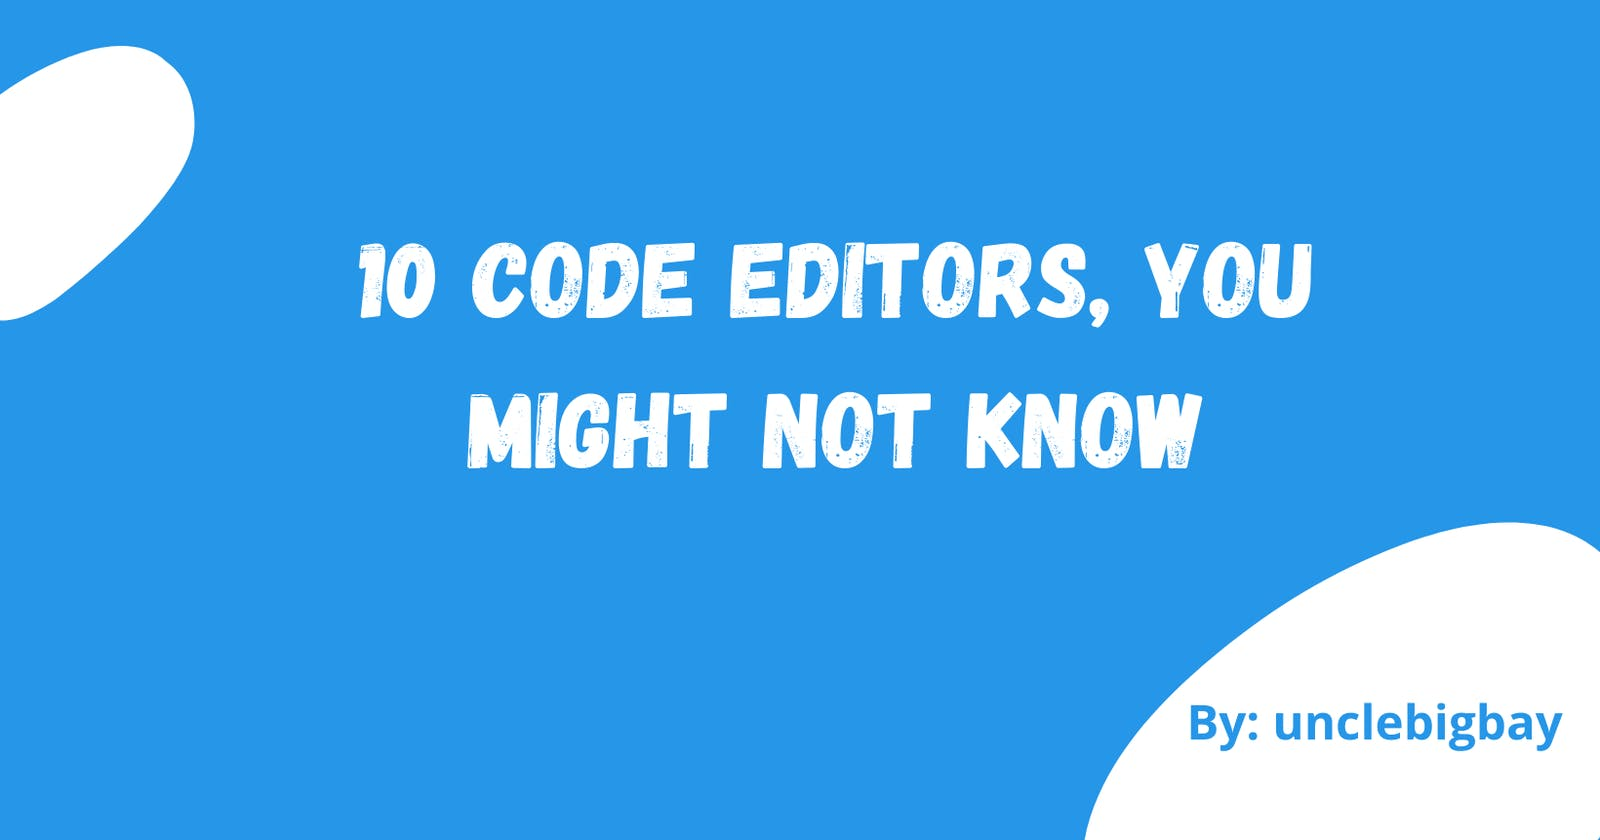 10 Code Editors, you might not know